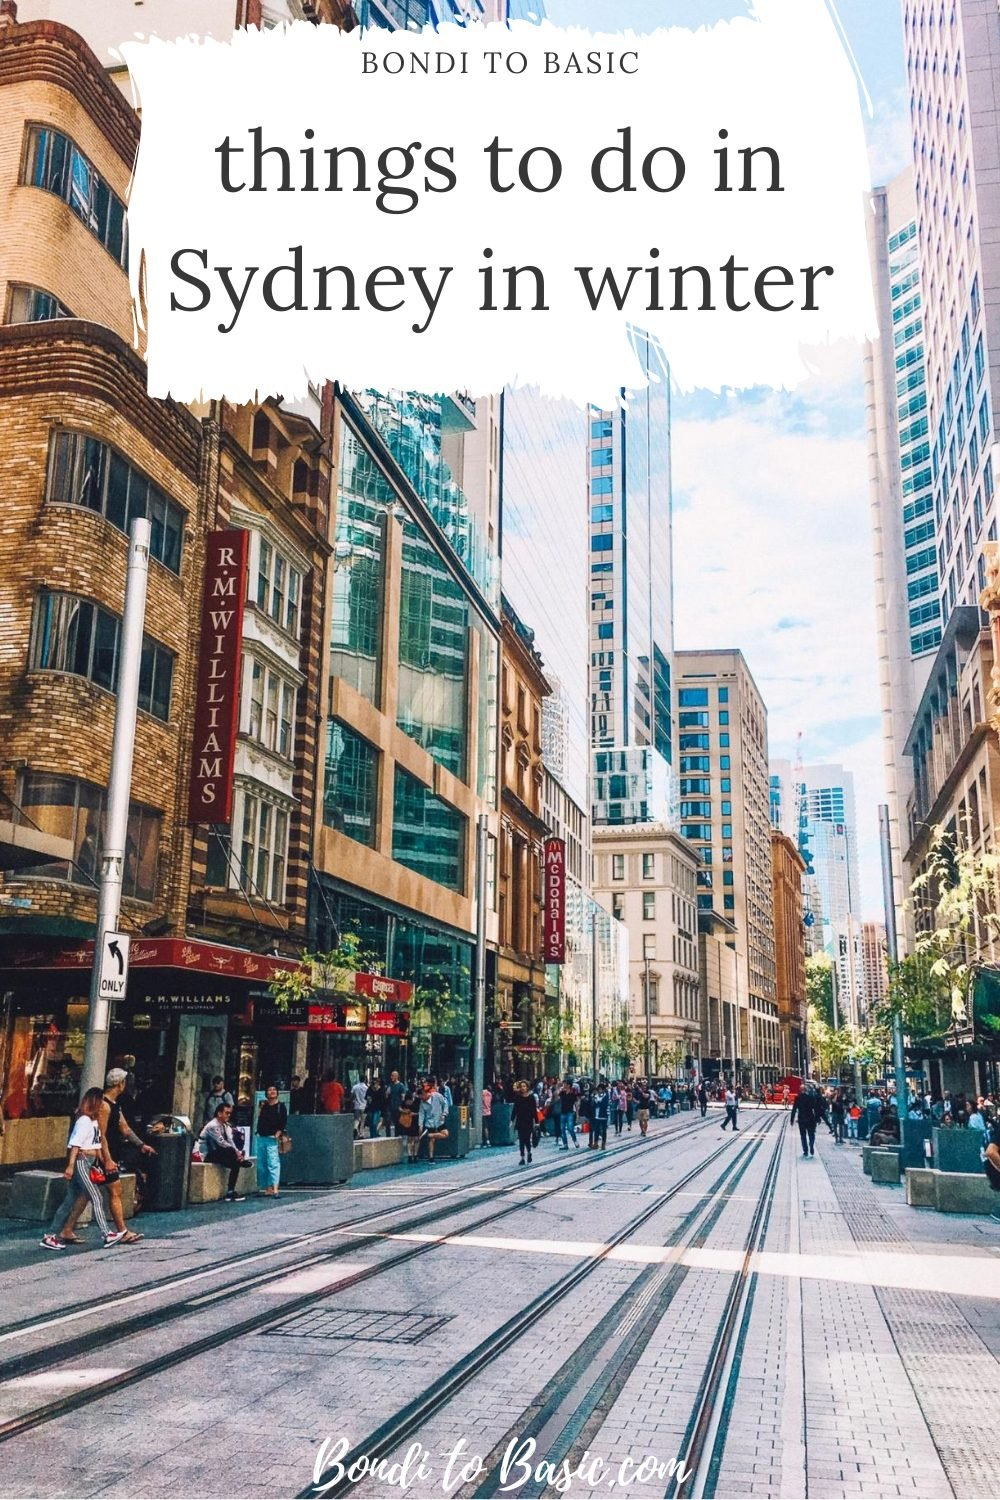 things to do in Sydney in winter